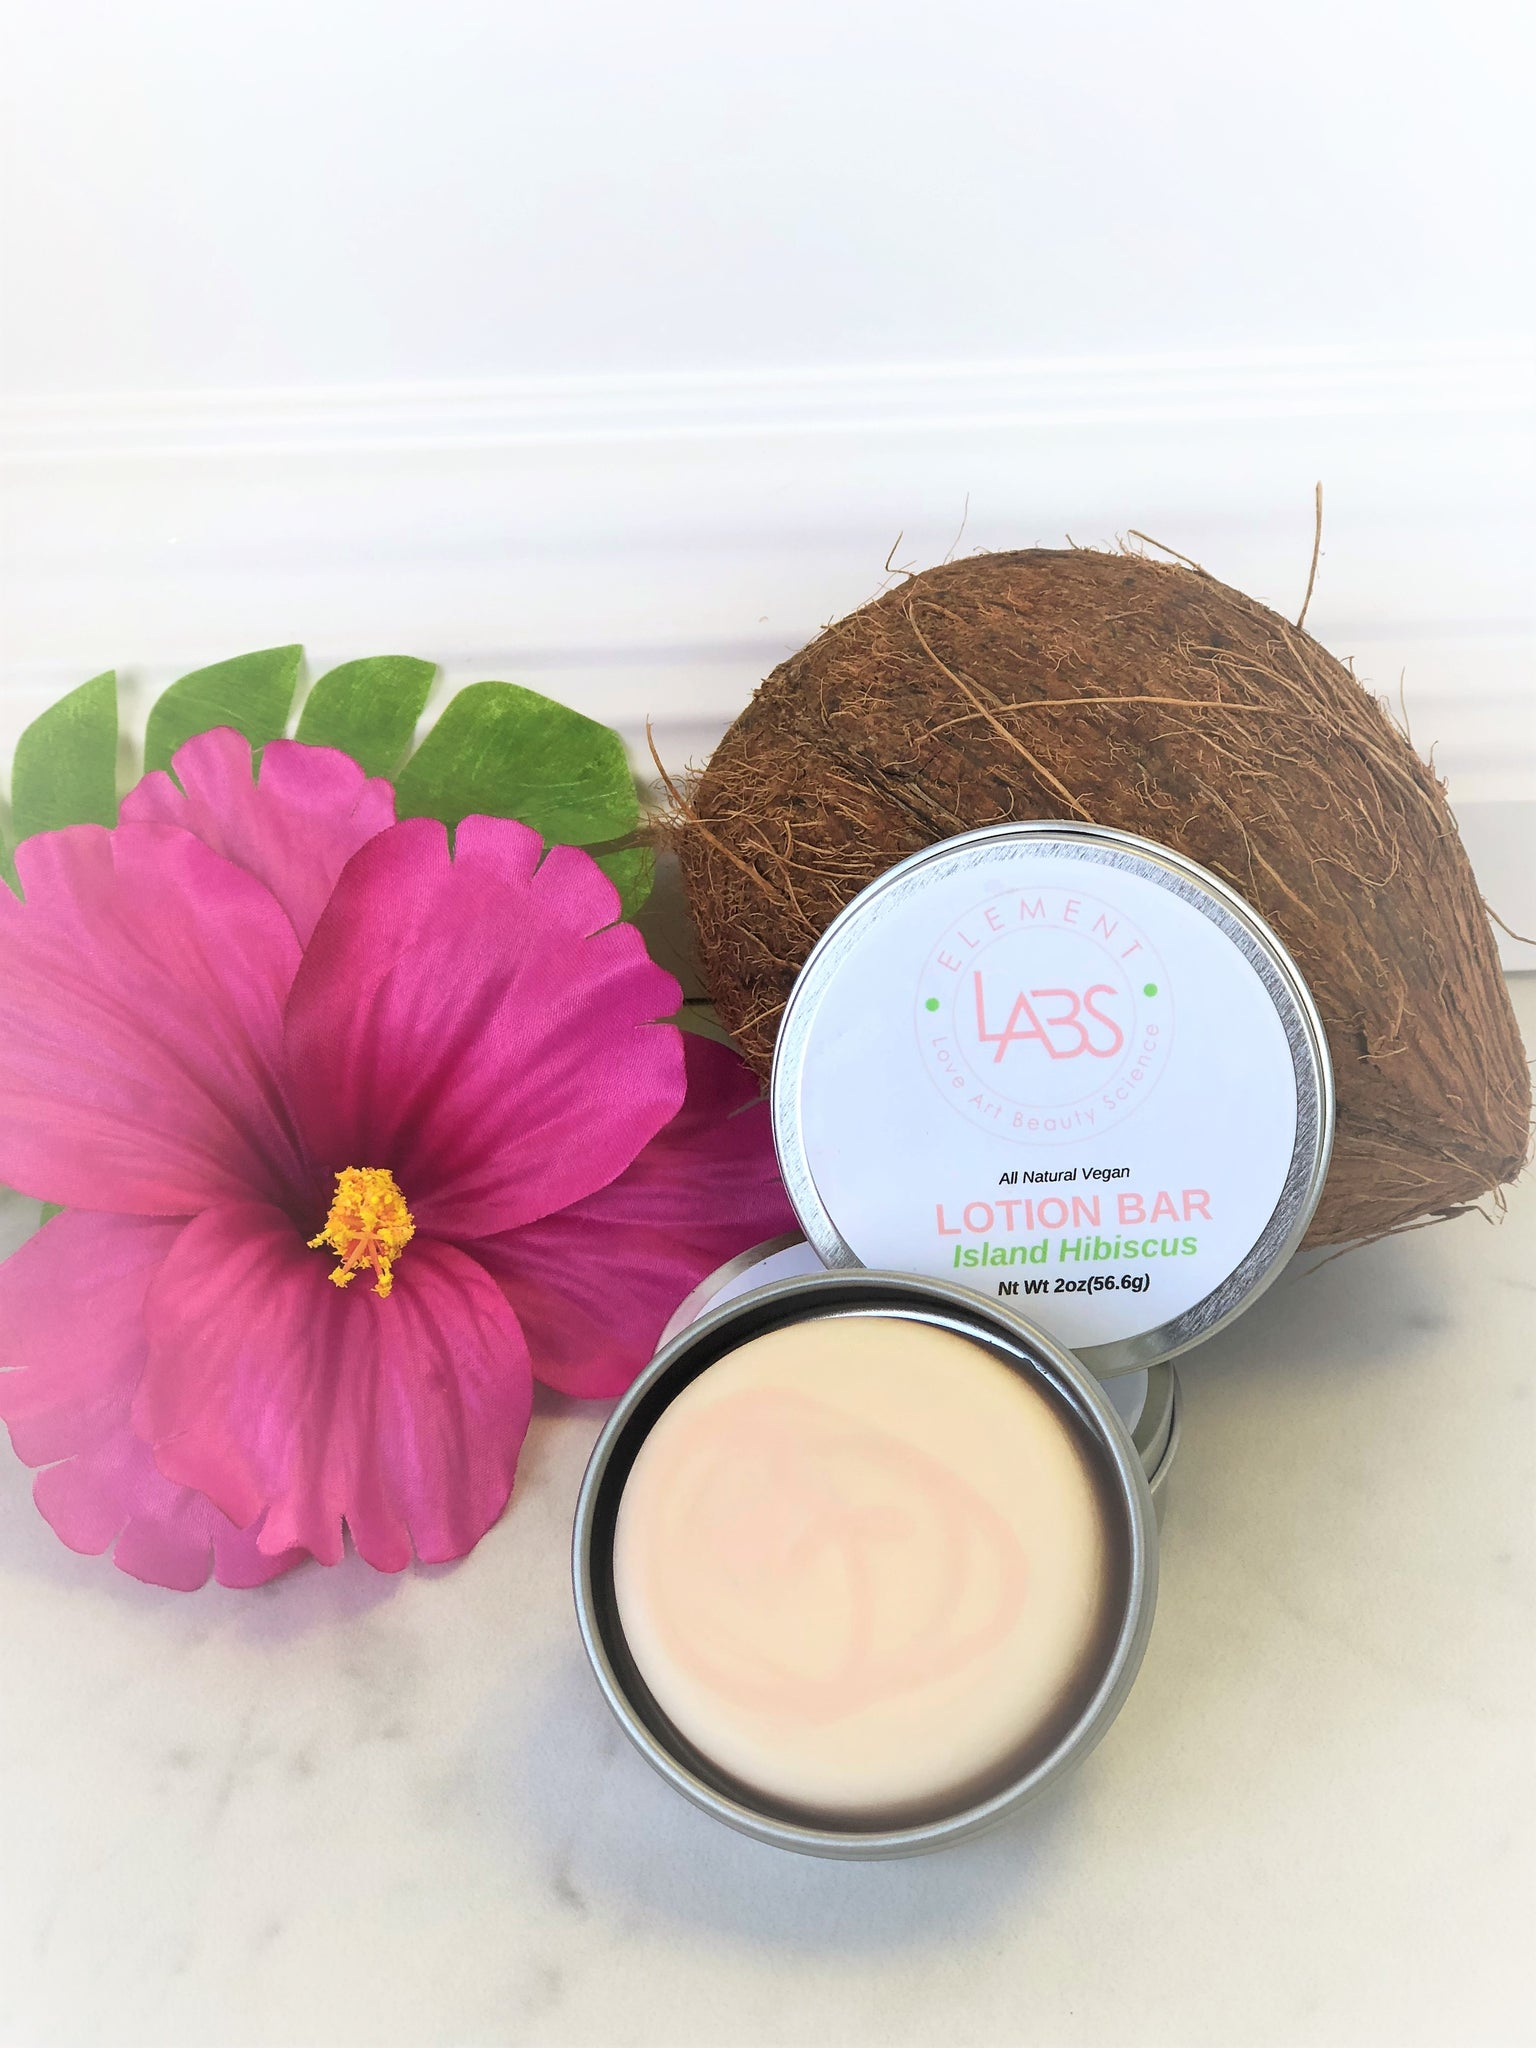 Island Hibiscus Lotion Bar